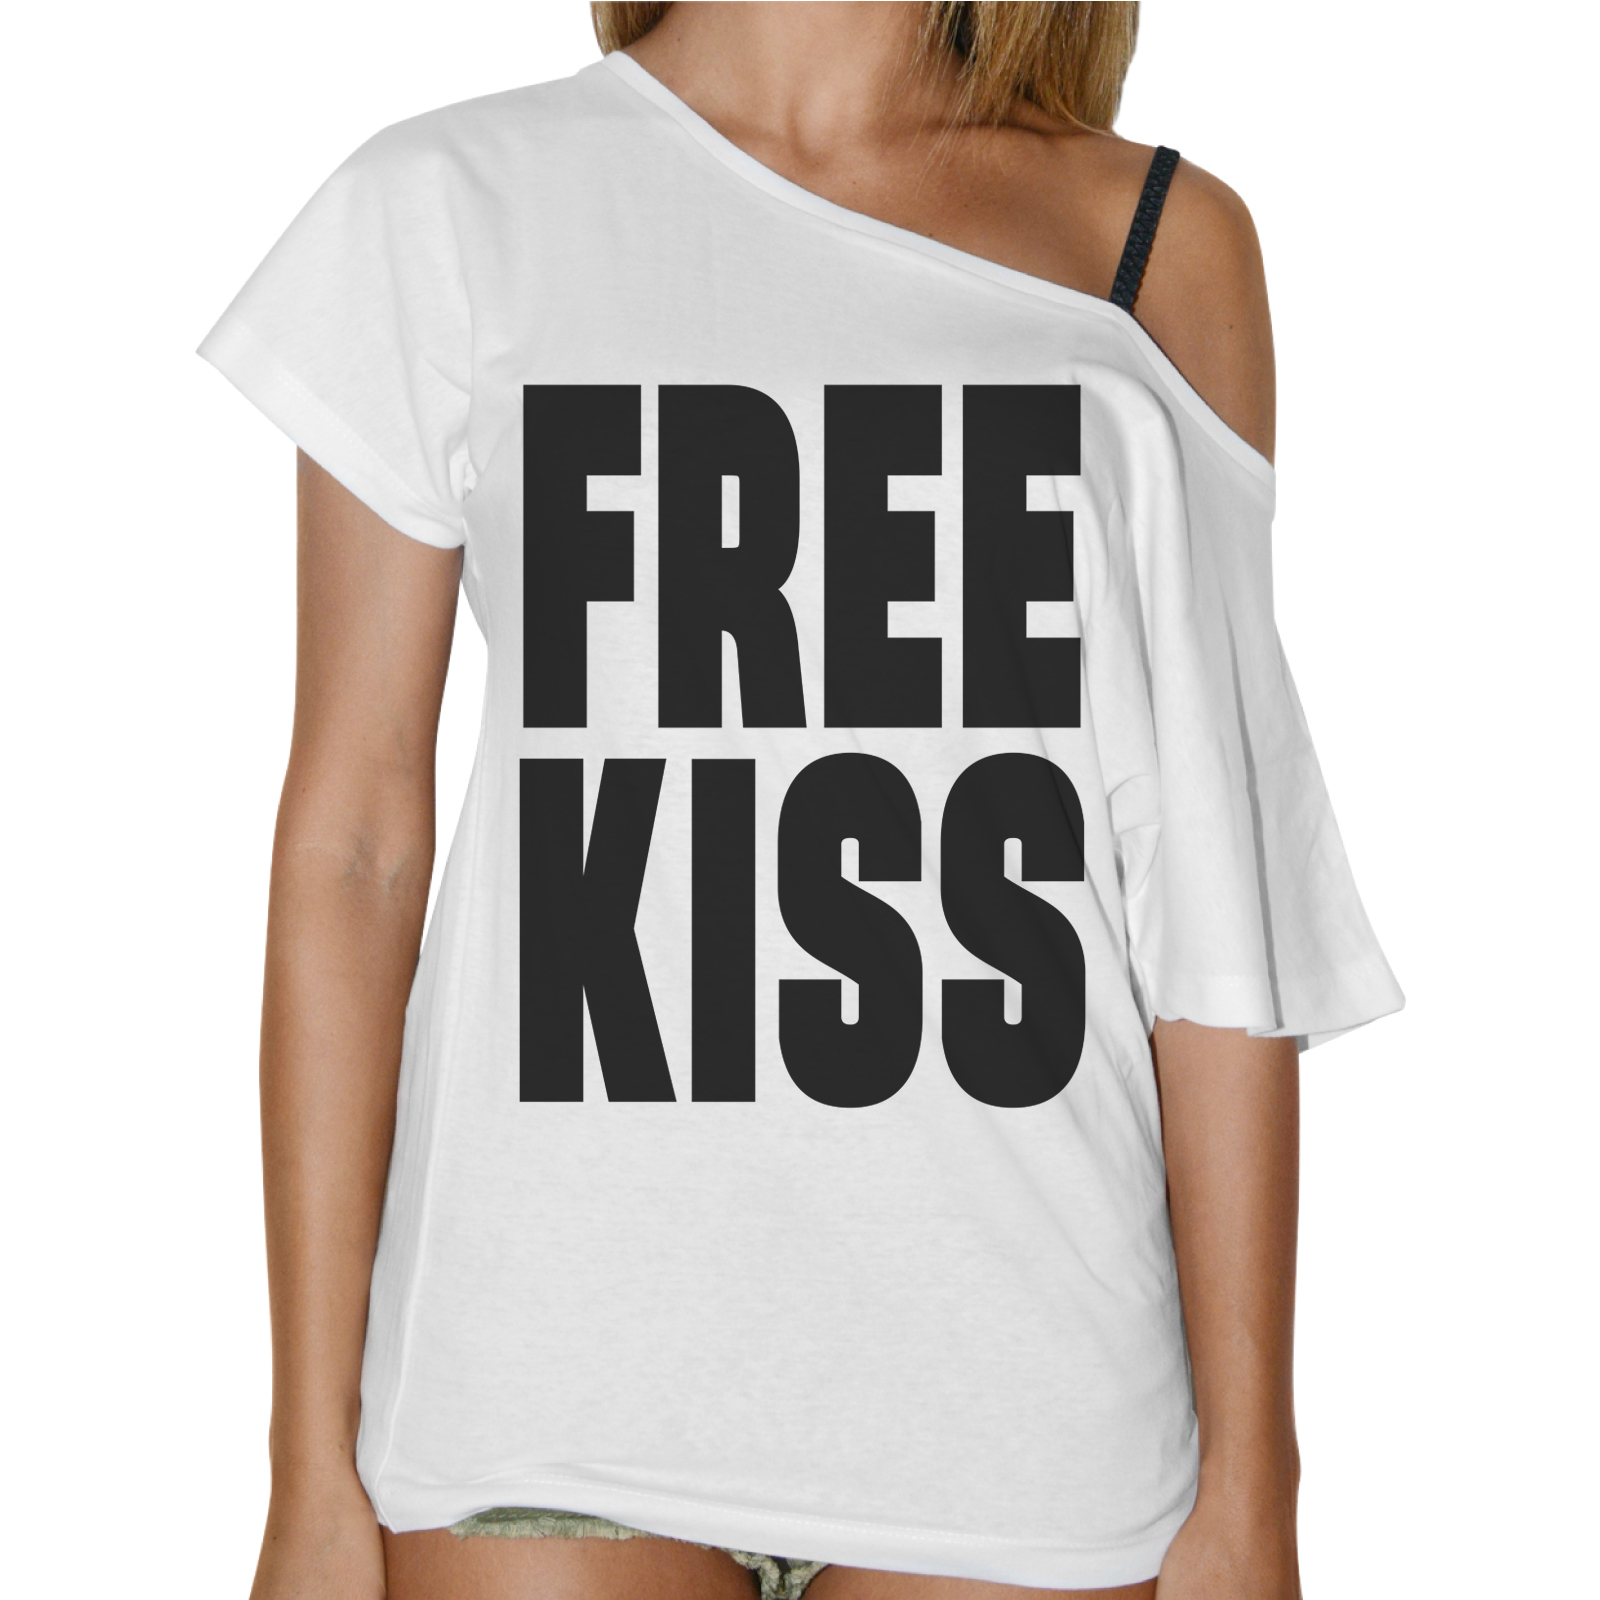 T-Shirt Donna Collo Barca FREE KISS